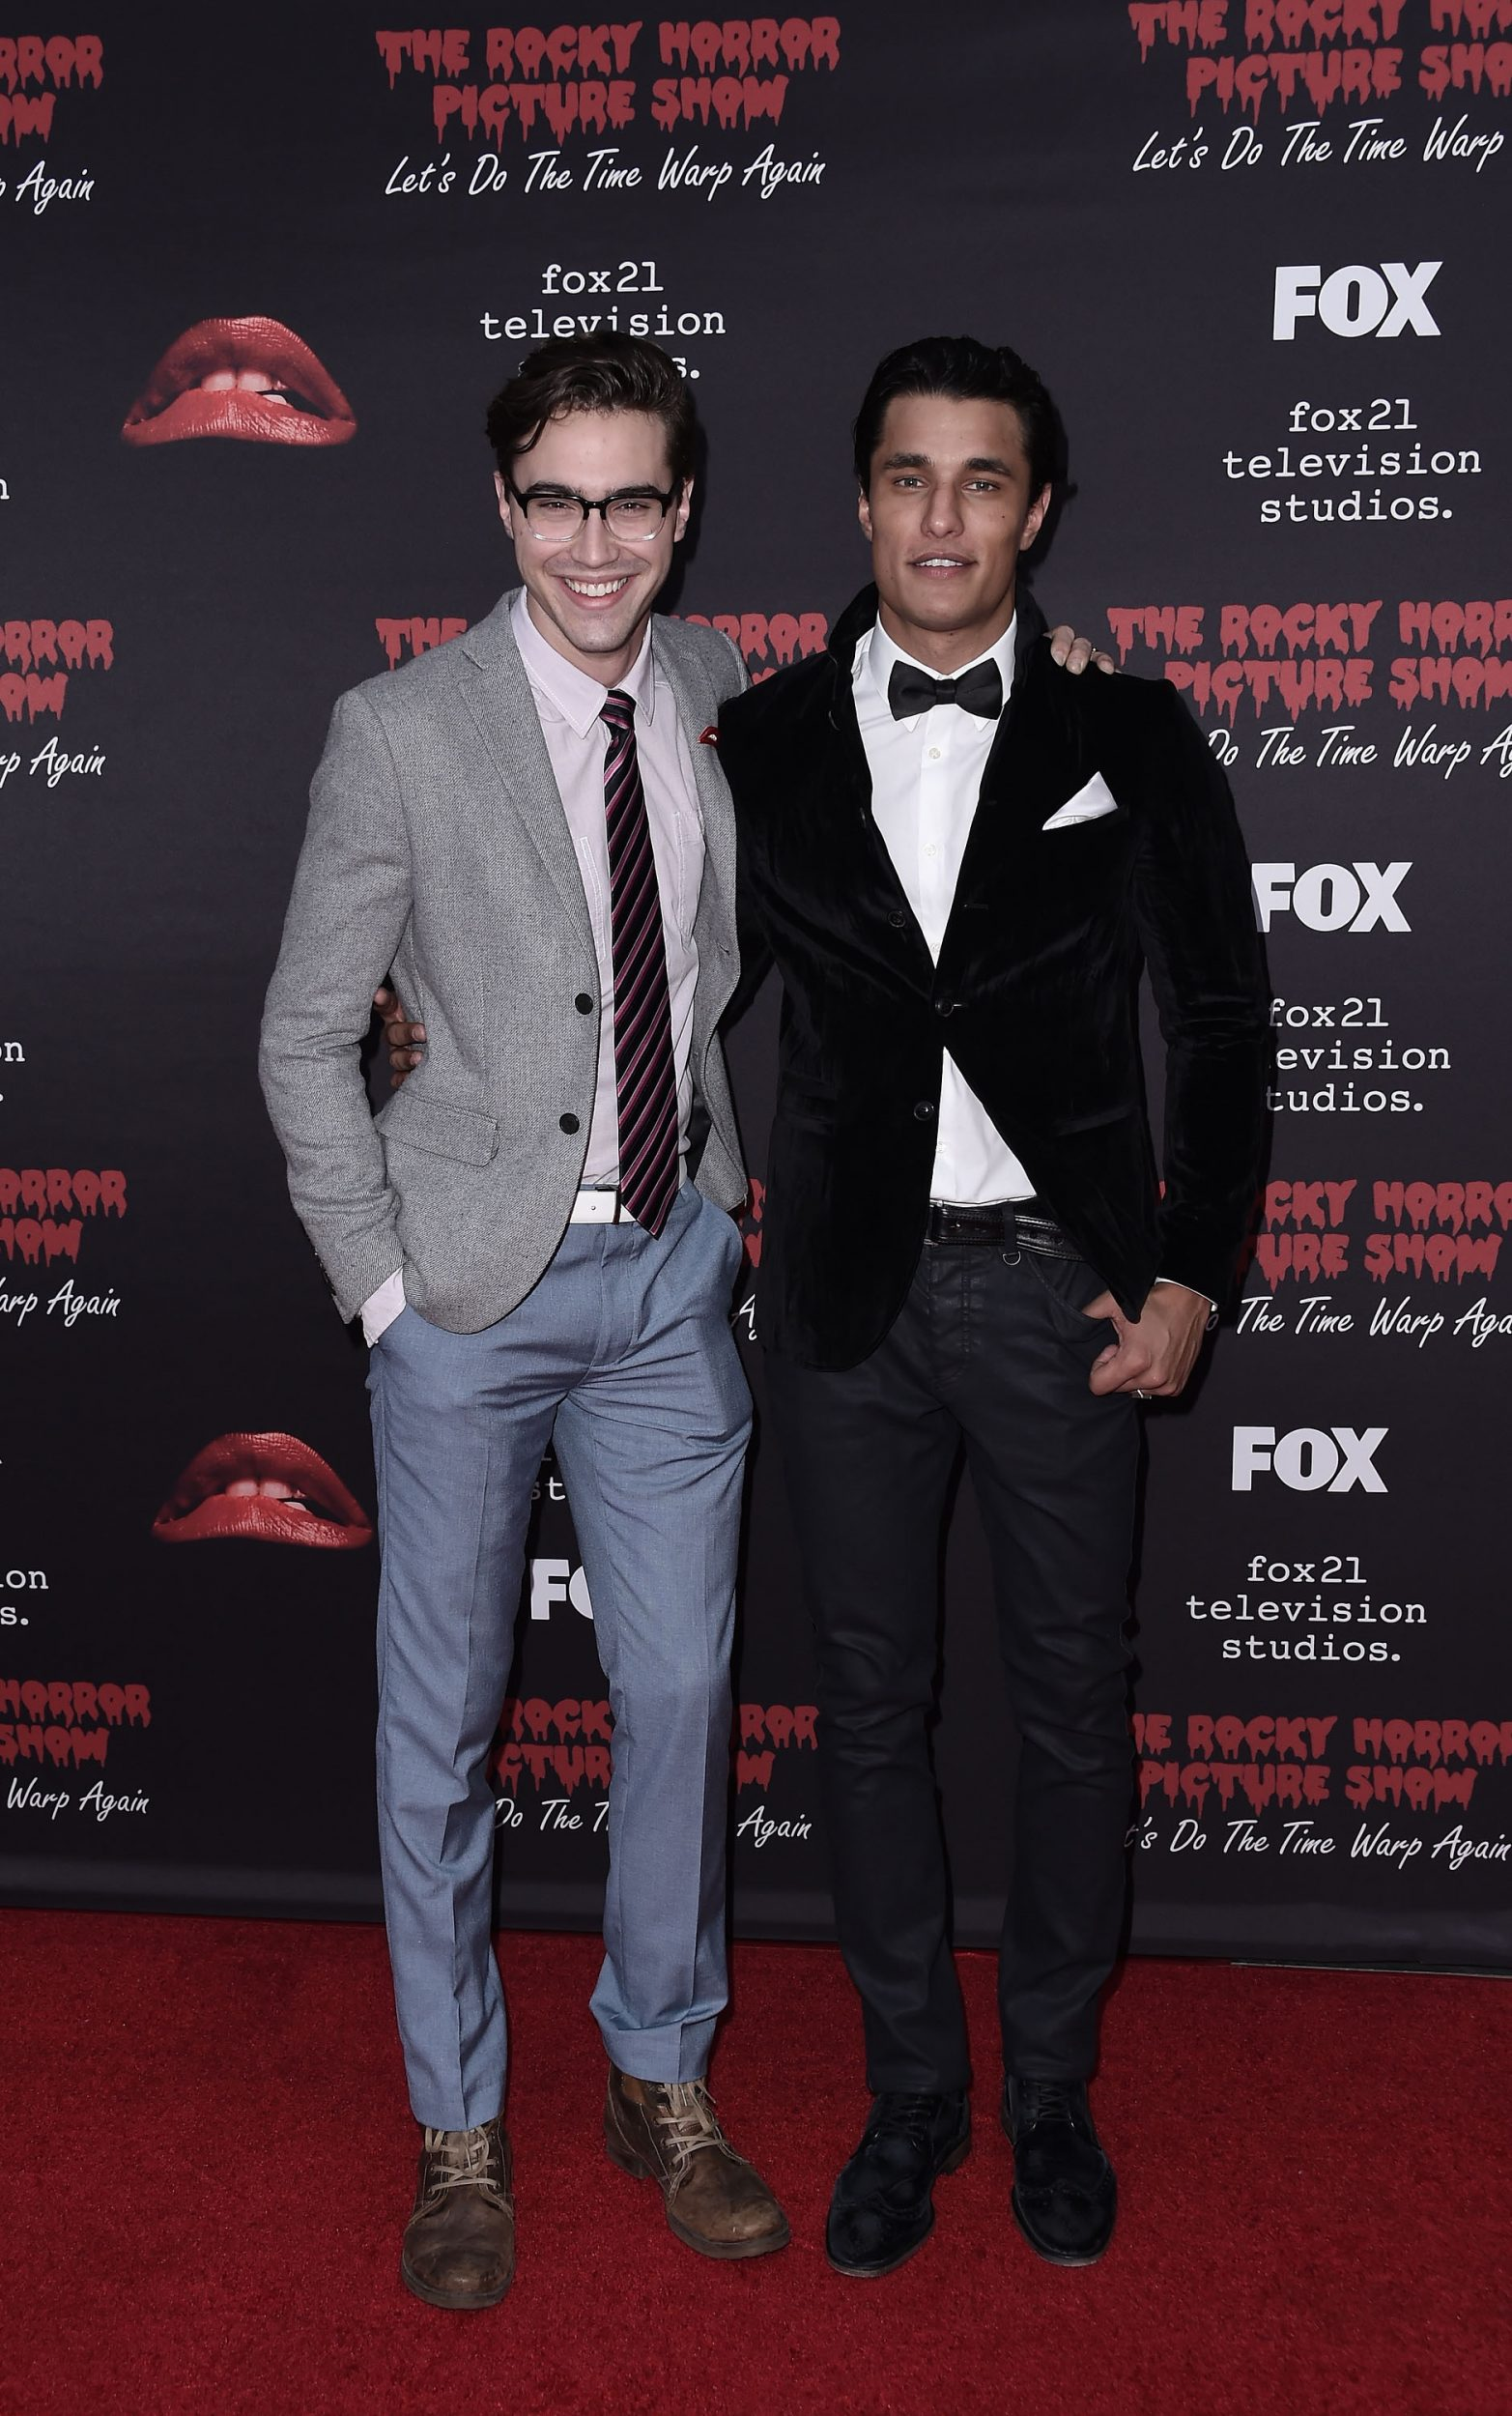 THE ROCKY HORROR PICTURE SHOW: Let's Do The Time Warp Again (and Transylvanians!): L-R: Cast members Ryan McCartan and Staz Nair arrive at THE ROCKY HORROR PICTURE SHOW: Let's Do The Time Warp Again (and Transylvanians!) premiere party red carpet at The Roxy on Thursday, Oct. 13, in Los Angeles, CA. THE ROCKY HORROR PICTURE SHOW: Let's Do The Time Warp Again (And Transylvanians!) premieres Thursday, Oct. 20 (8:00-10:00 PM ET/PT) on FOX. © 2016 FOX BROADCASTING CR: Scott Kirkland/FOX